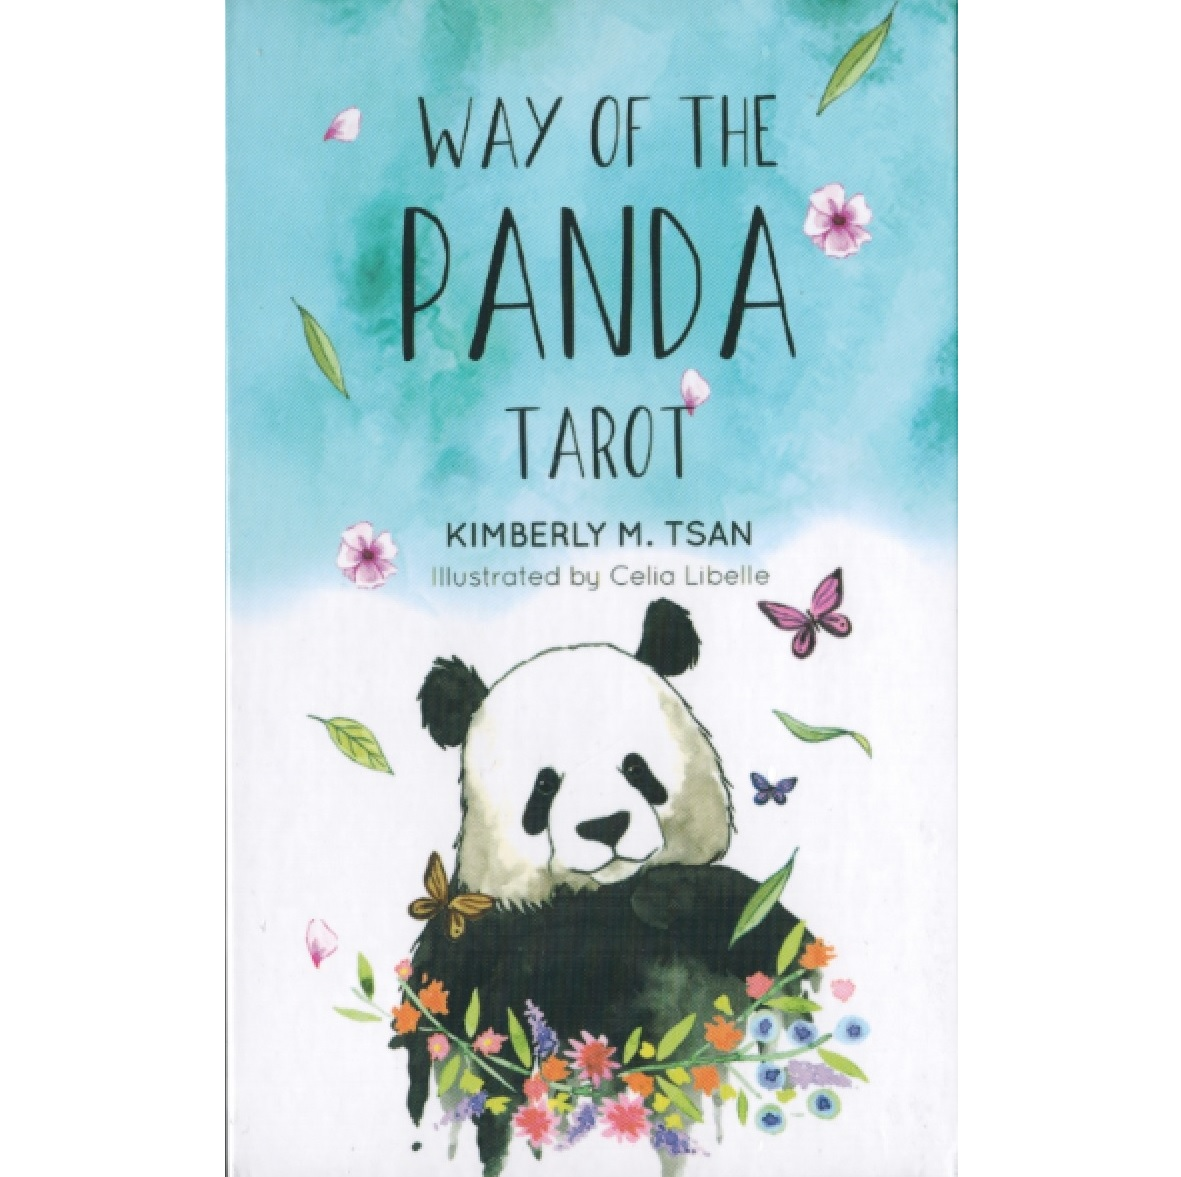 Way of the Panda Tarot 13